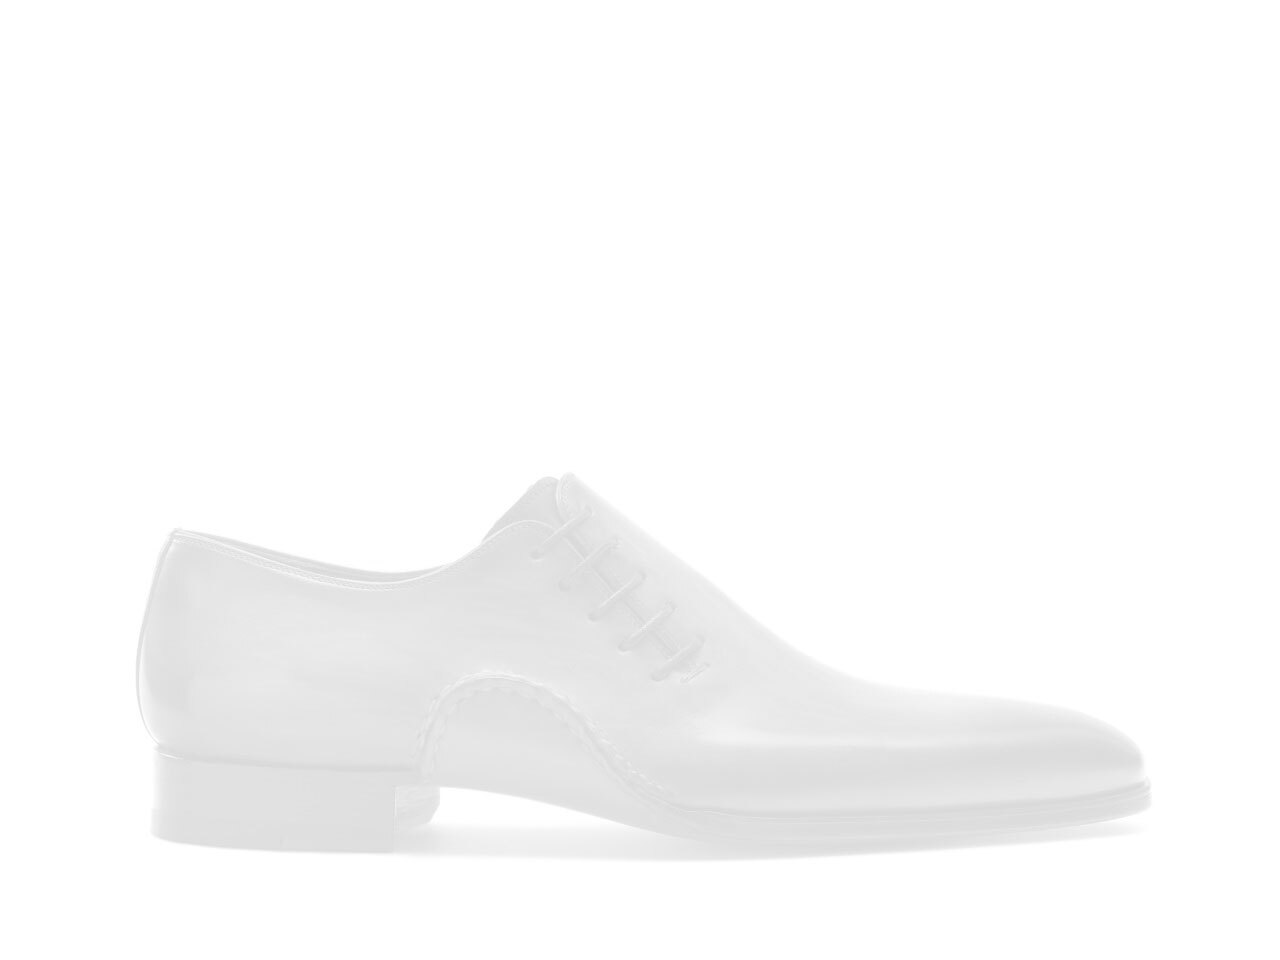 Side view of the Magnanni Nico Cuero Men's Sneakers